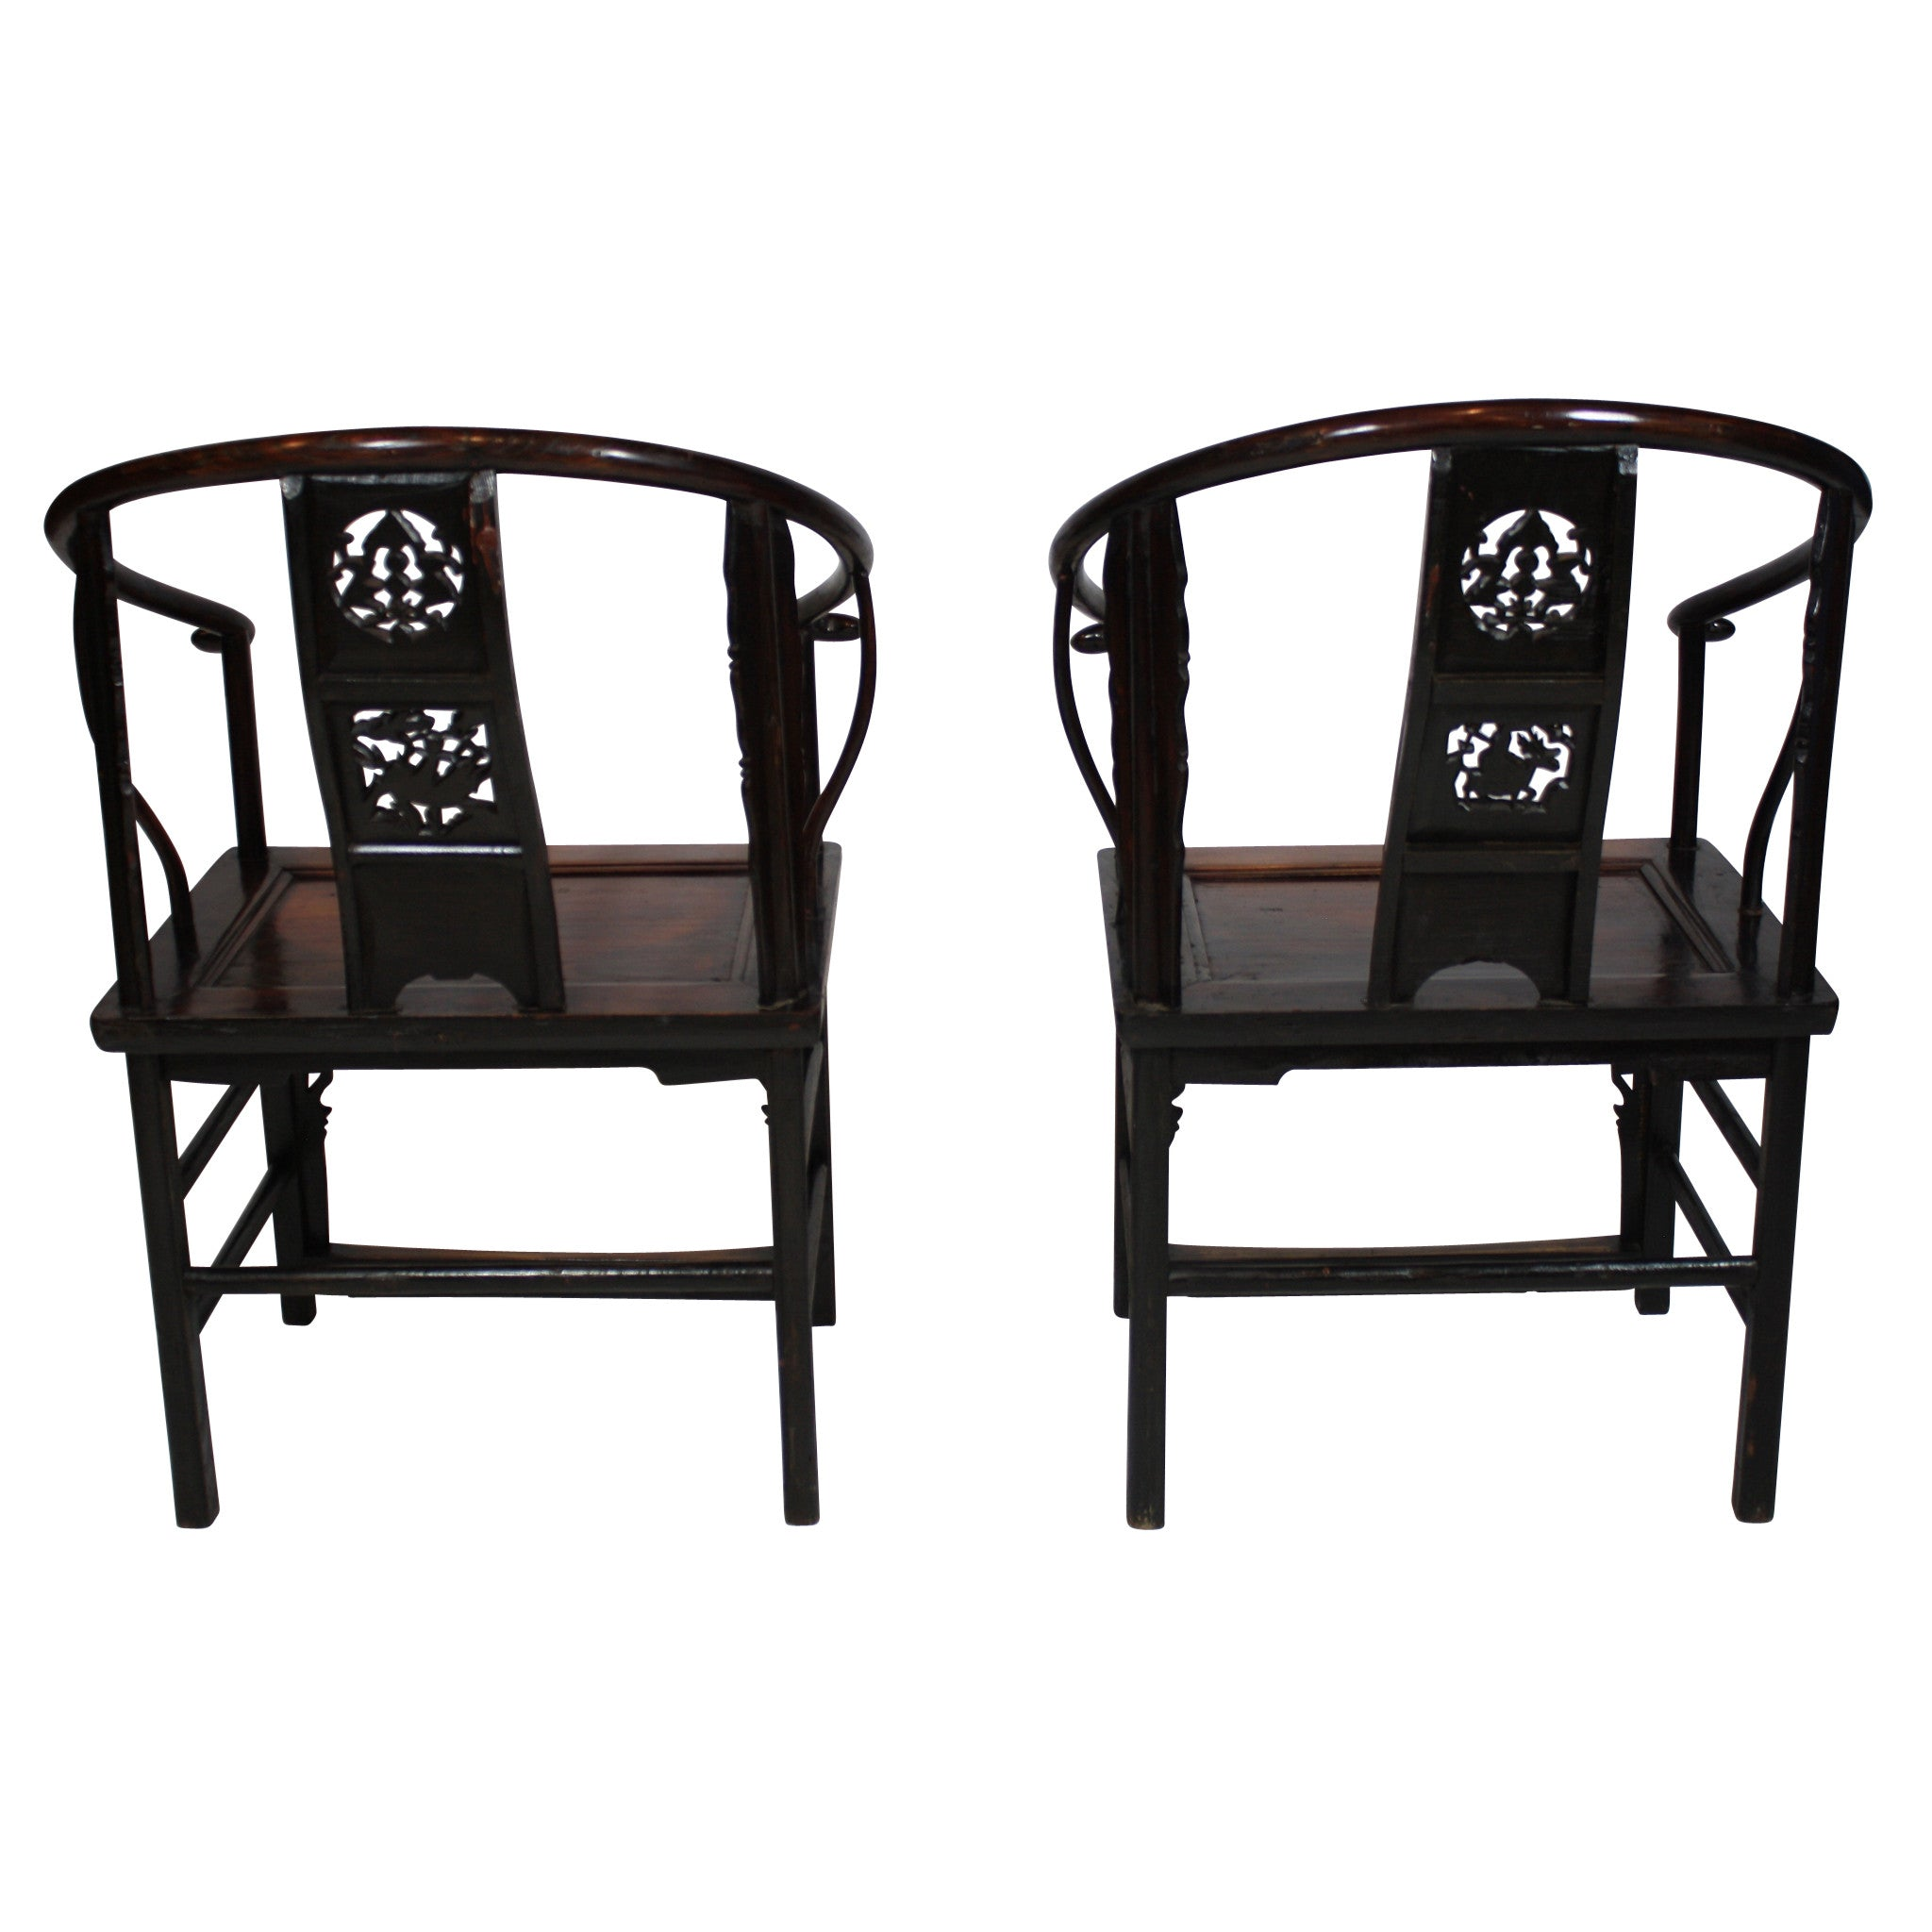 ski-country-antiques - Chinese Armchairs - Set of 2